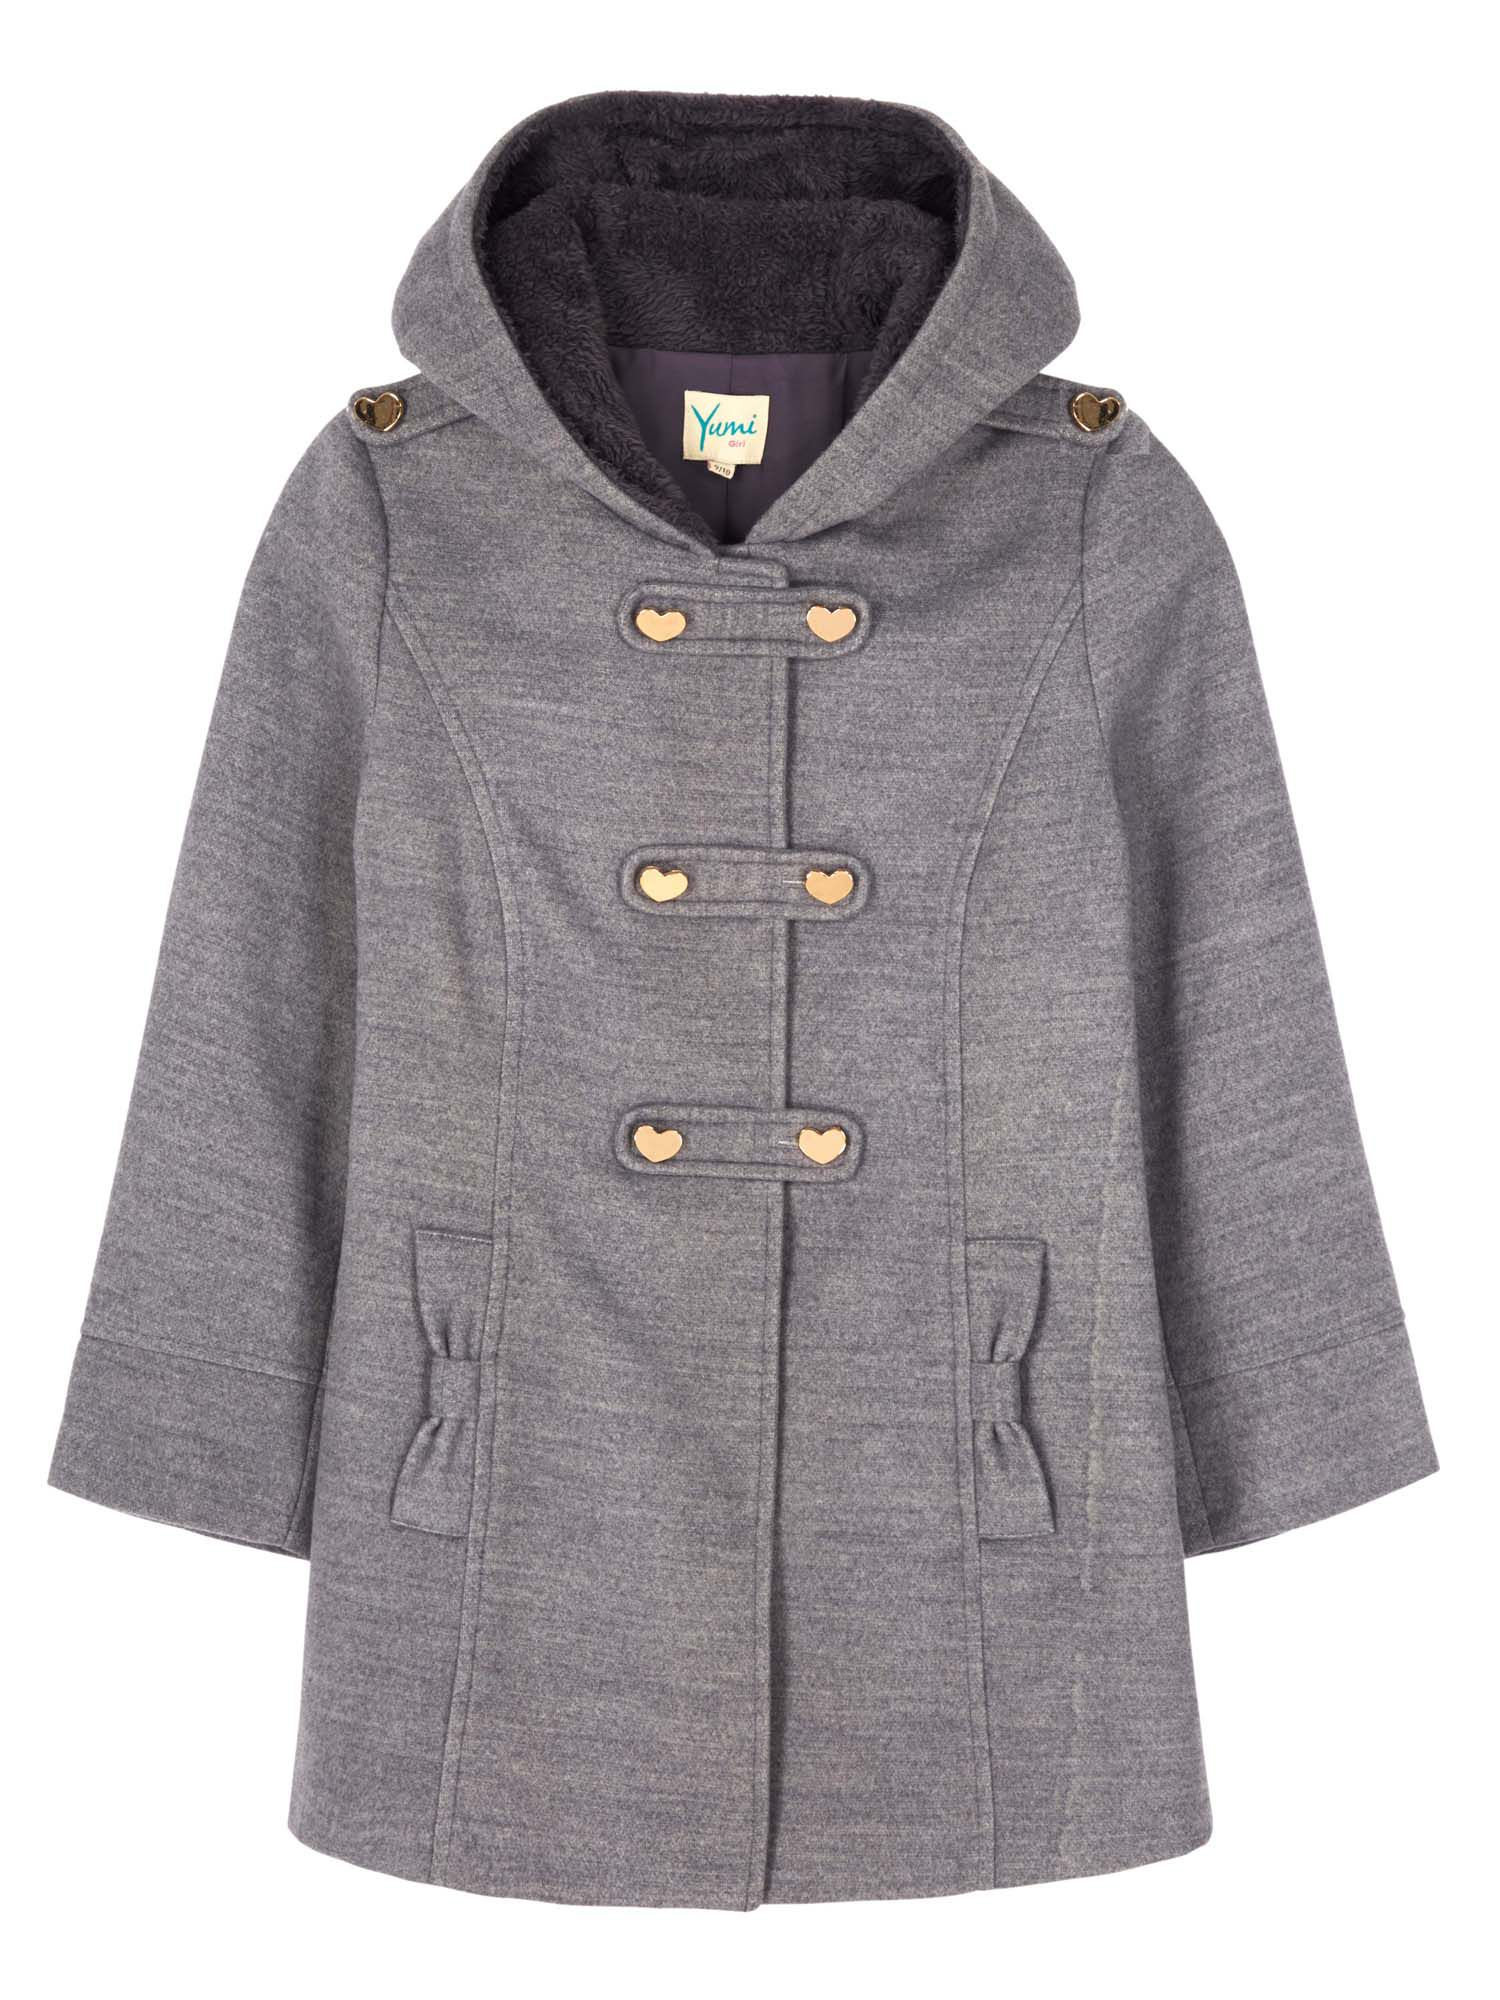 Duffle Coat » Girls Duffle Coats